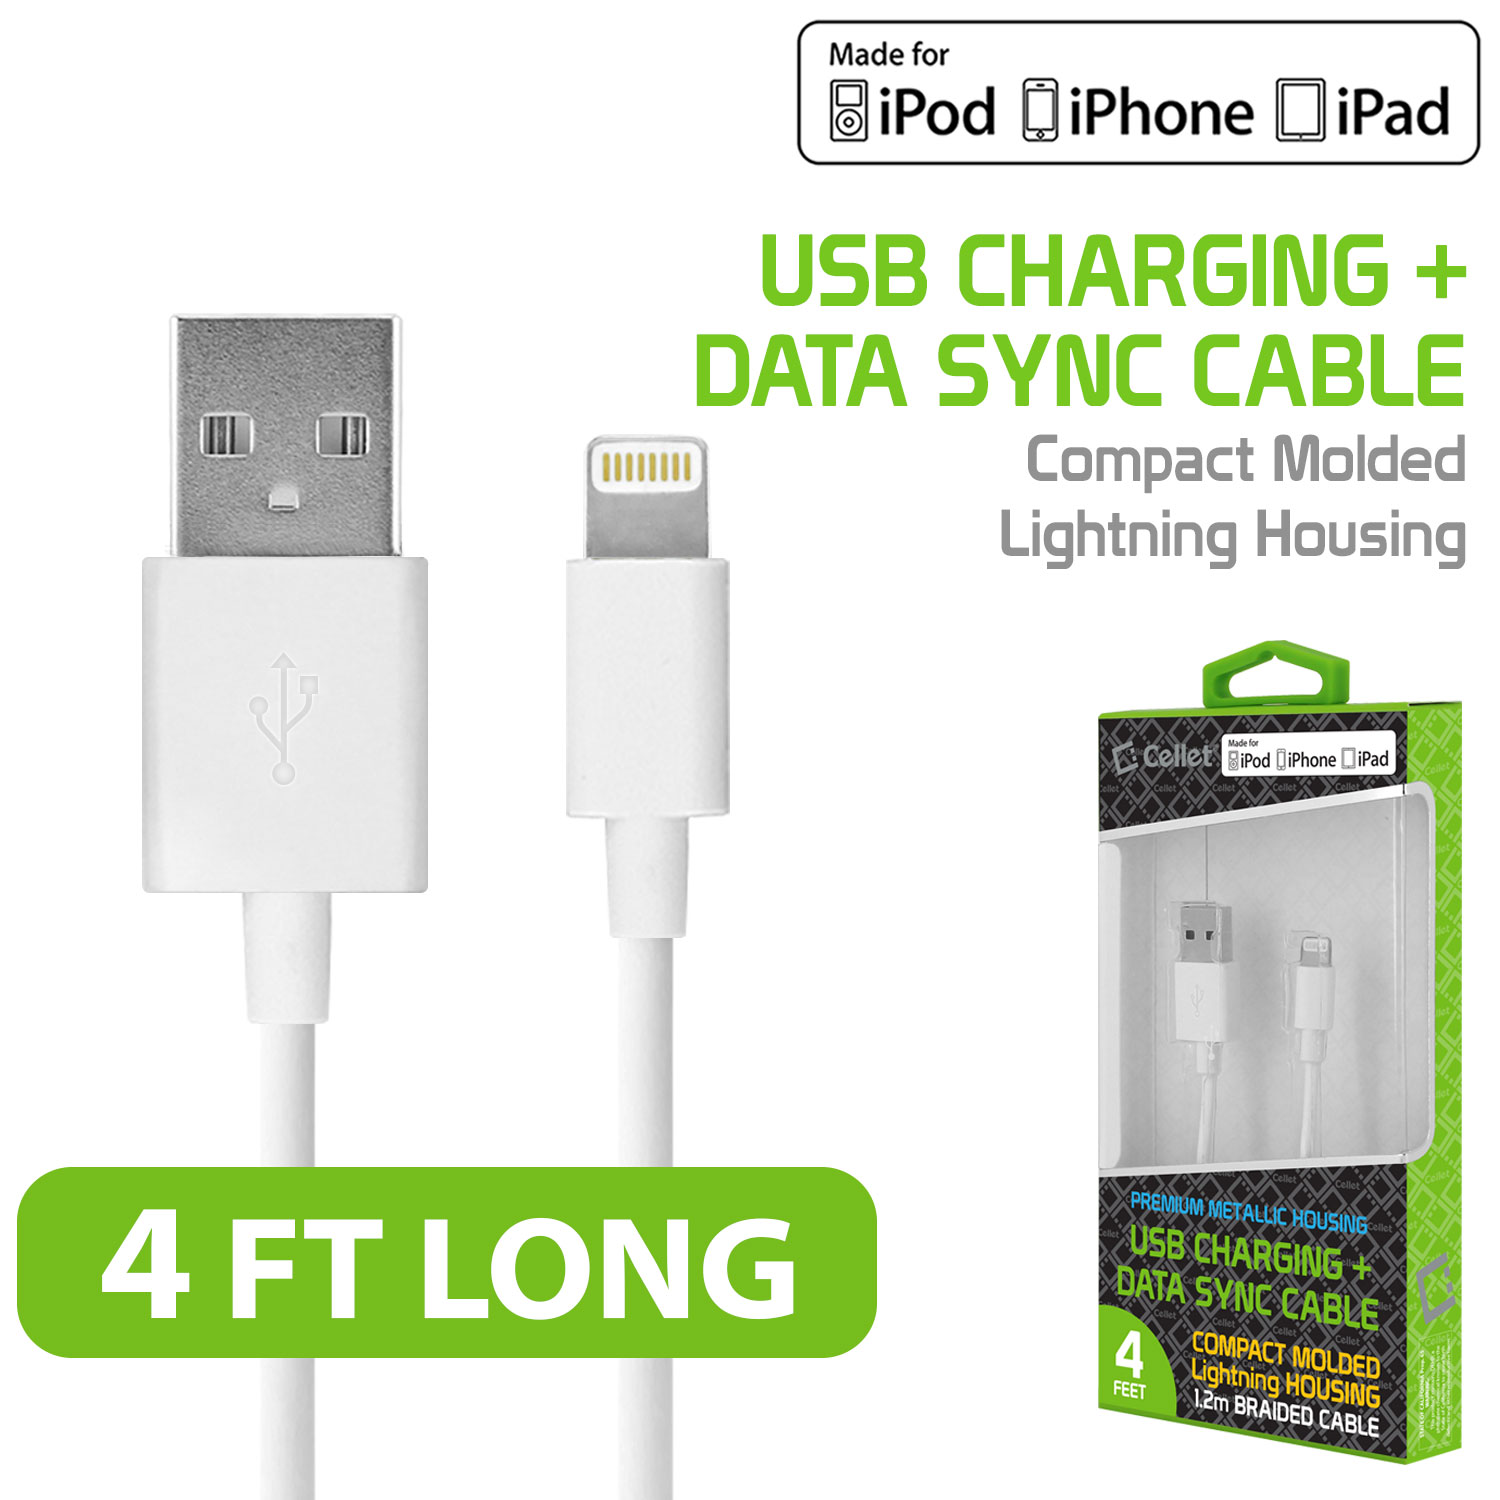 Cellet 4' Lightning 8-Pin to USB Charging Data Sync Cable for Apple iPad Pro, iPad mini 4/2, iPad Air 1/2, iPhone 6s Plus/6s/6 Plus/6/5s/5c/5, iPod touch, iPod nano